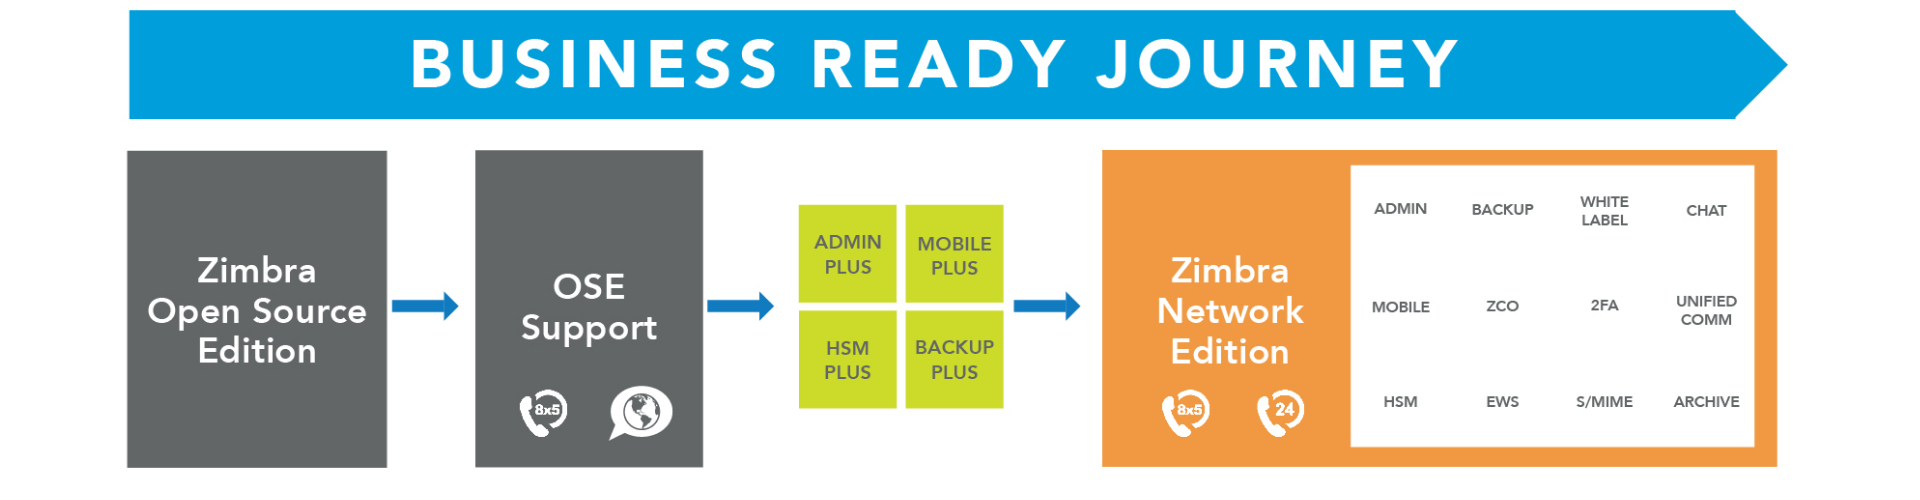 Zimbra Open Source Edition Support